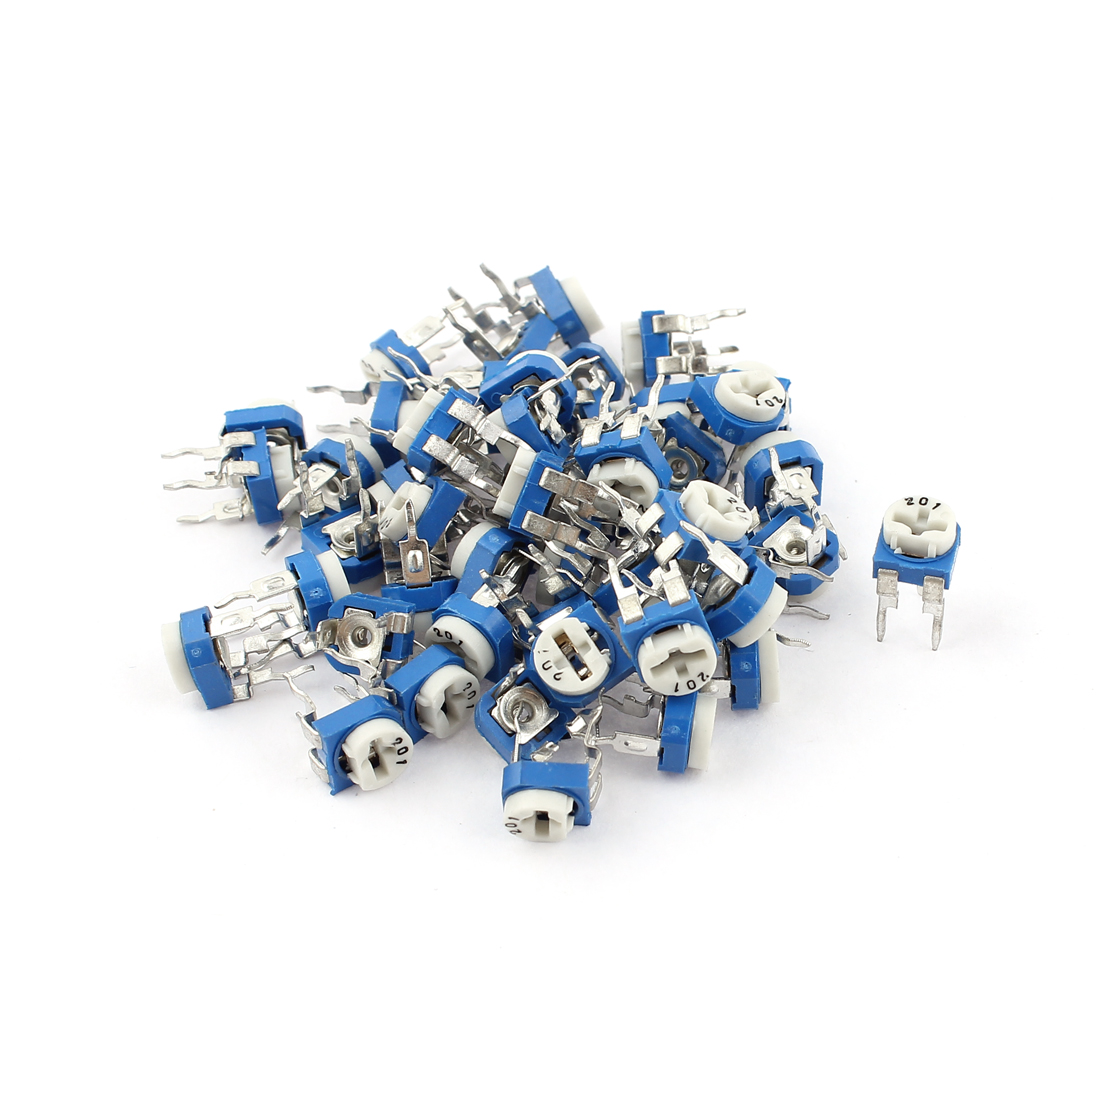 50Pcs 200 ohm Vertical PCB Preset Variable Resistor Trimmer Potentiometer Blue